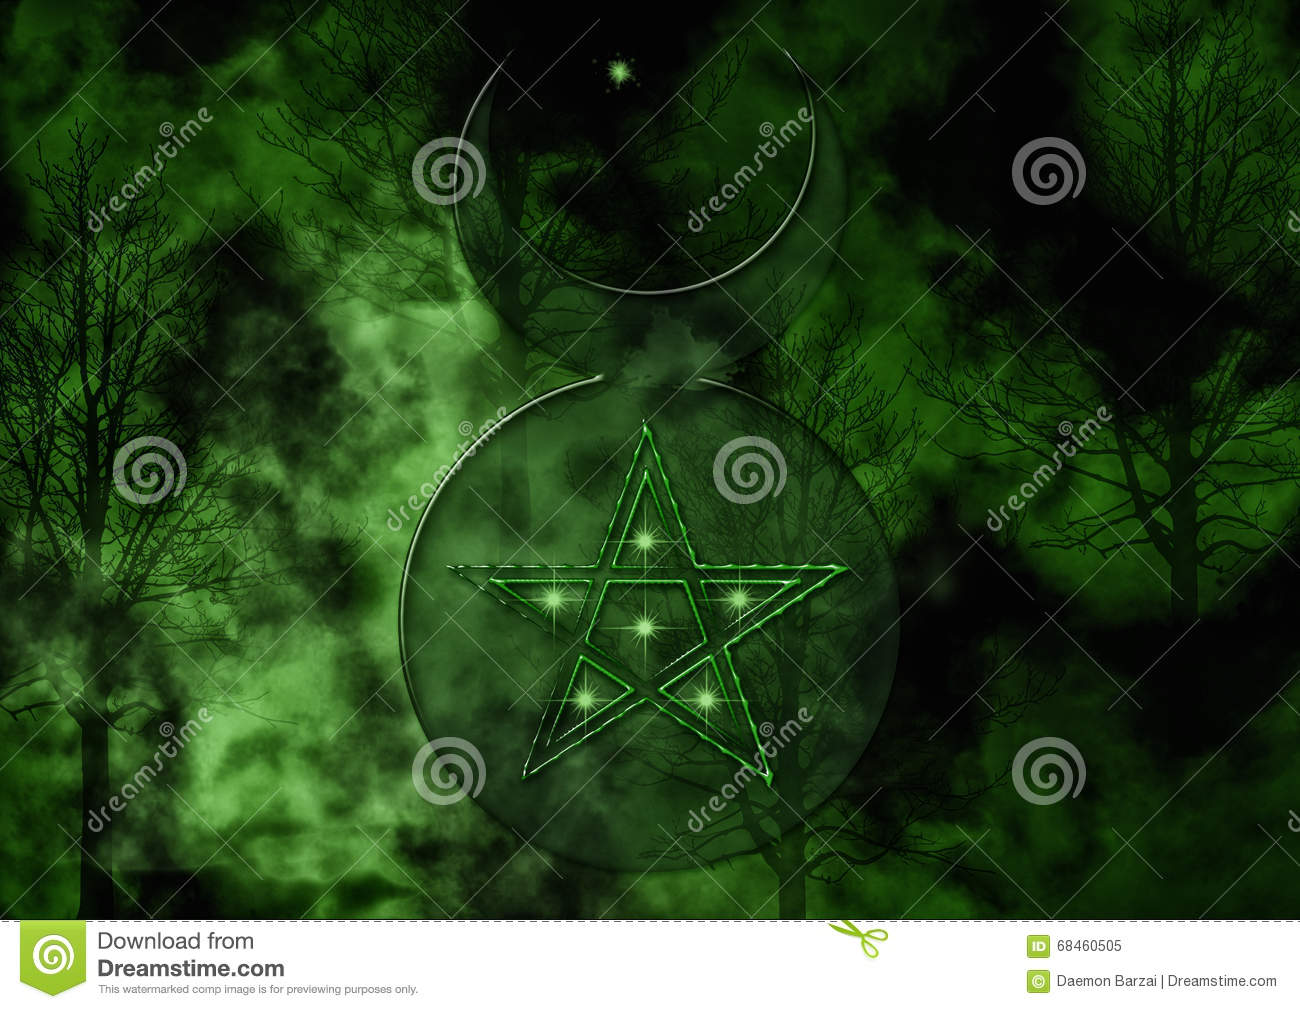 Background with wiccan god symbol stock illustration background with wiccan god symbol biocorpaavc Choice Image